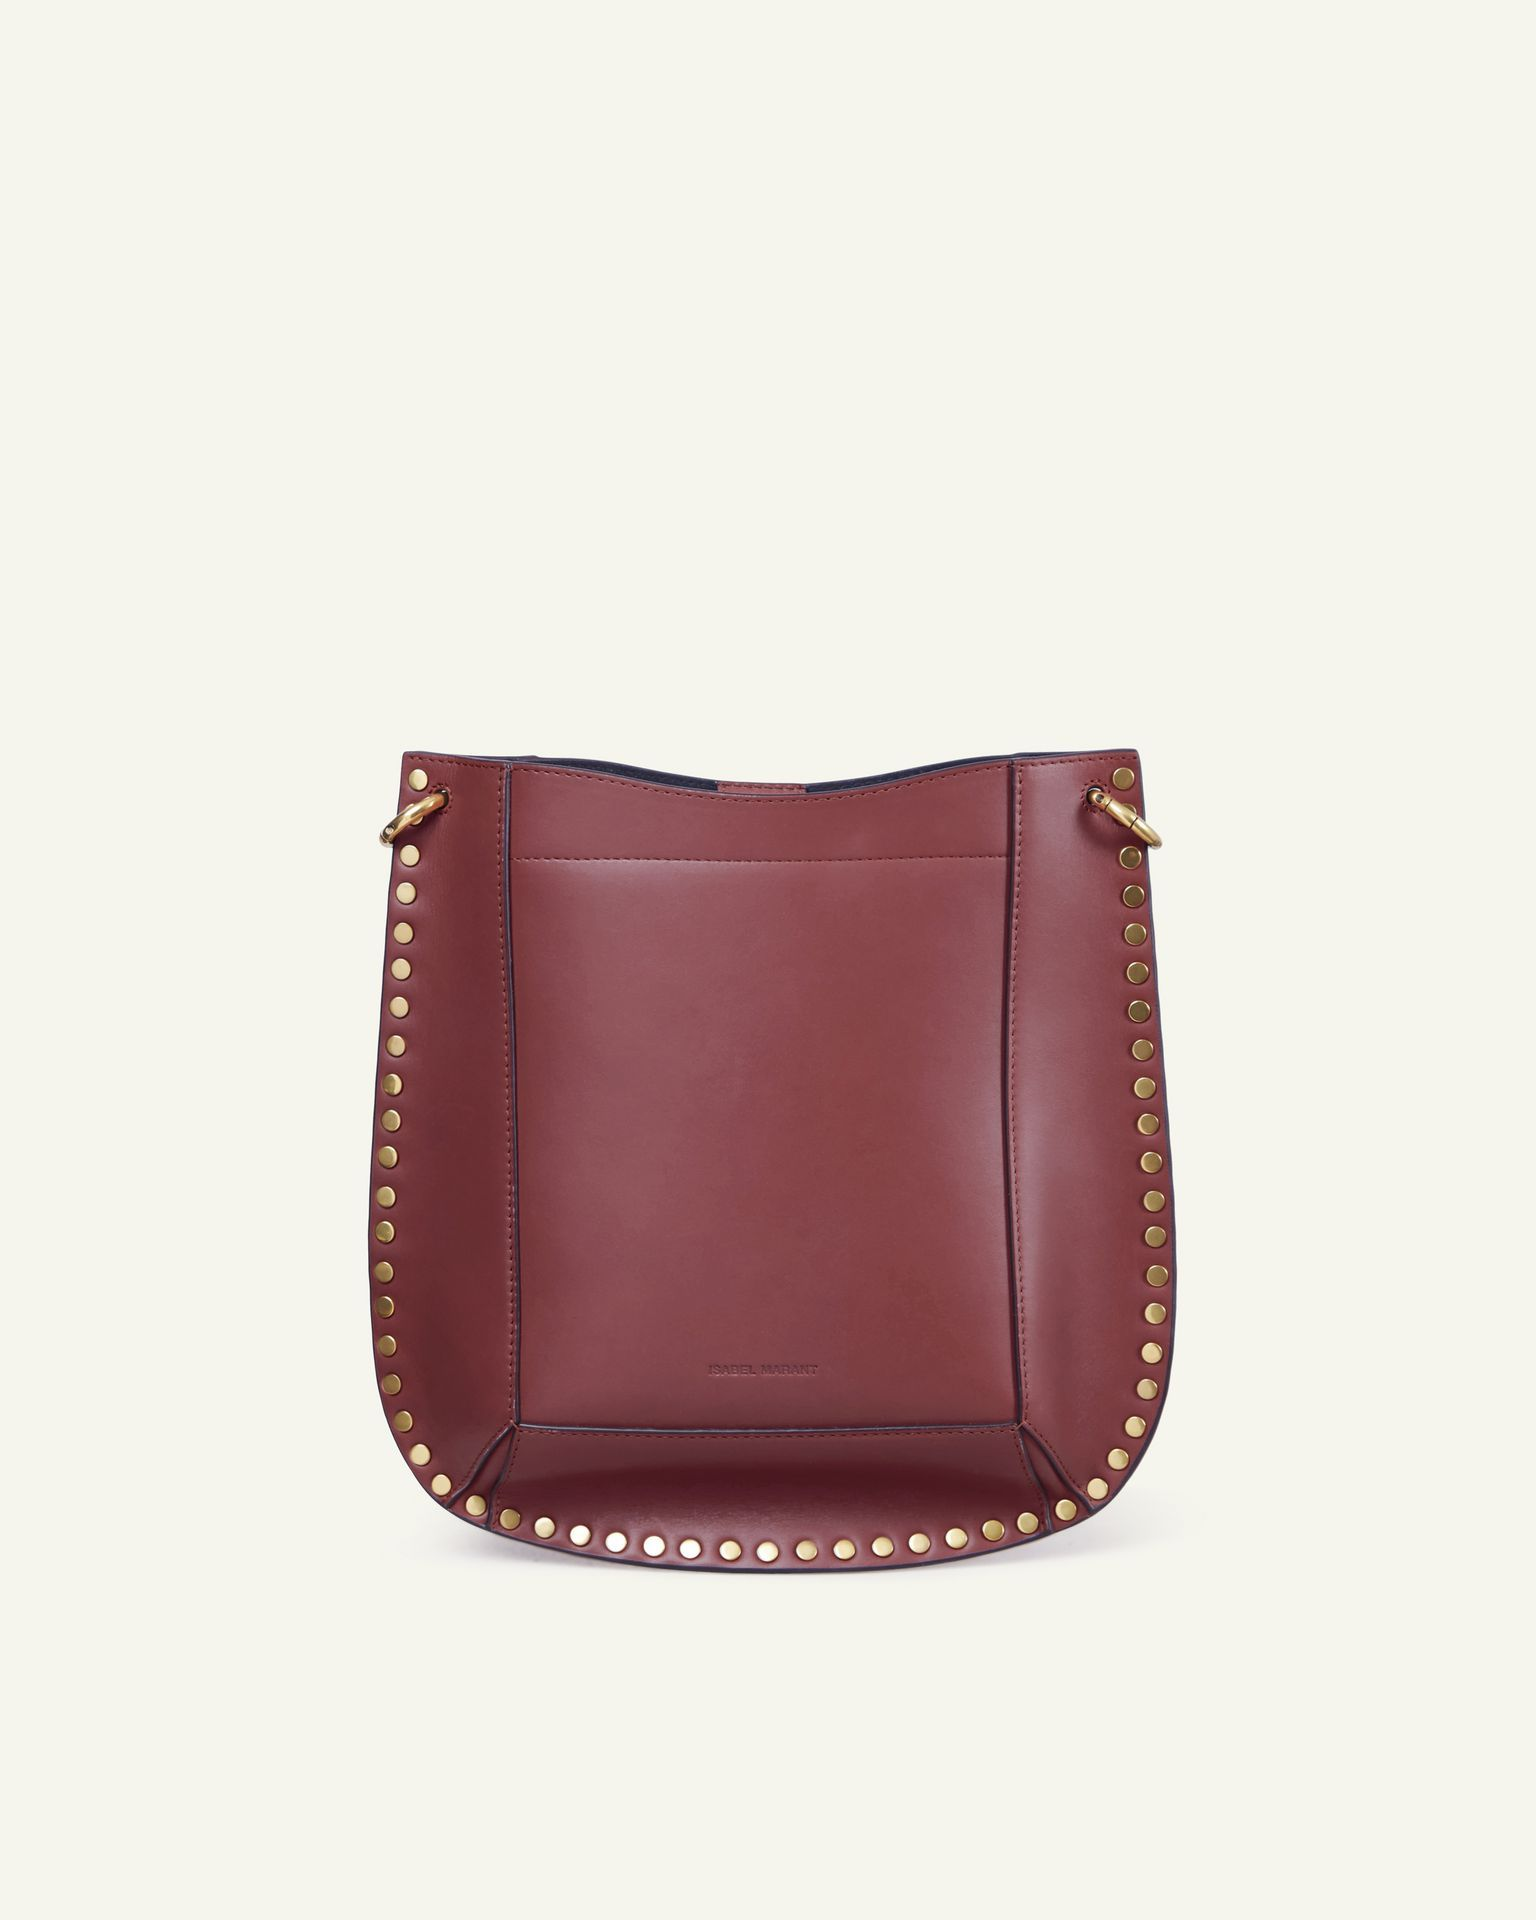 Isabel Marant BAG BURGUNDY Isabel Marant | Oskan Bag - Burgundy